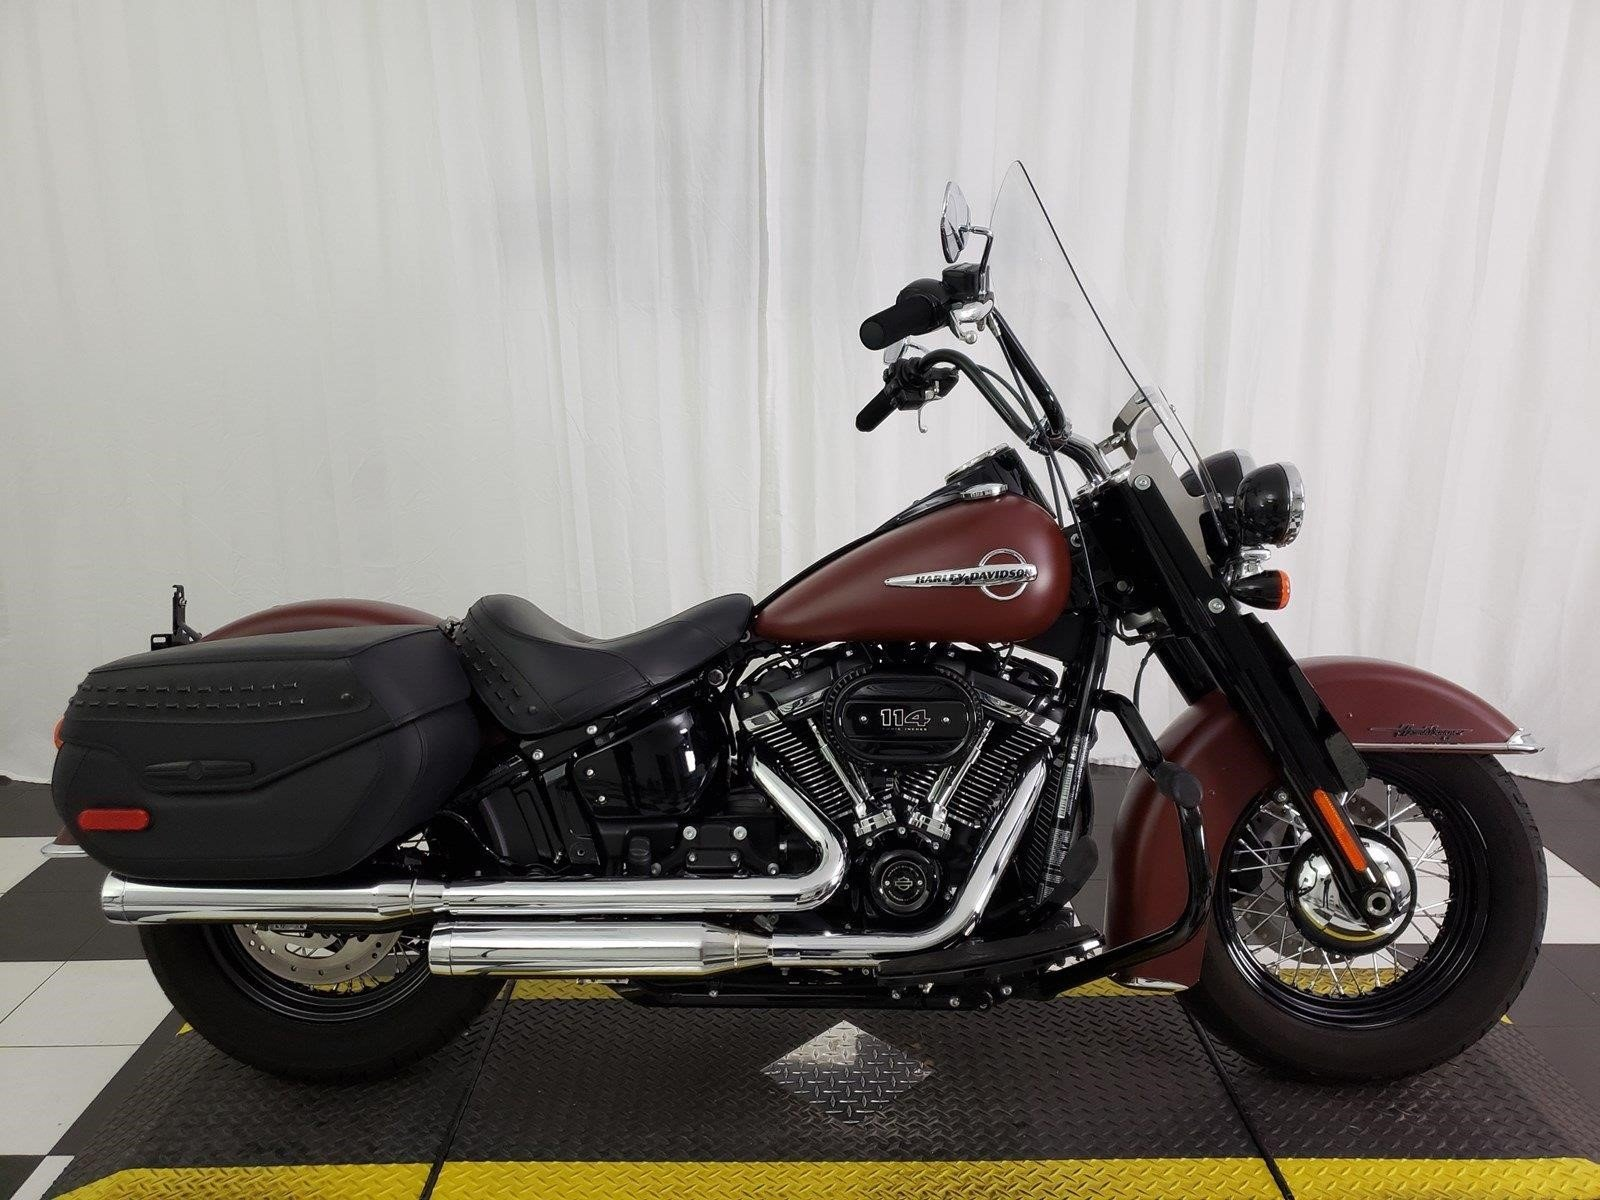 2018 HARLEY DAVIDSON HERITAGE SOFTAIL CLASSIC For Sale in Mesa